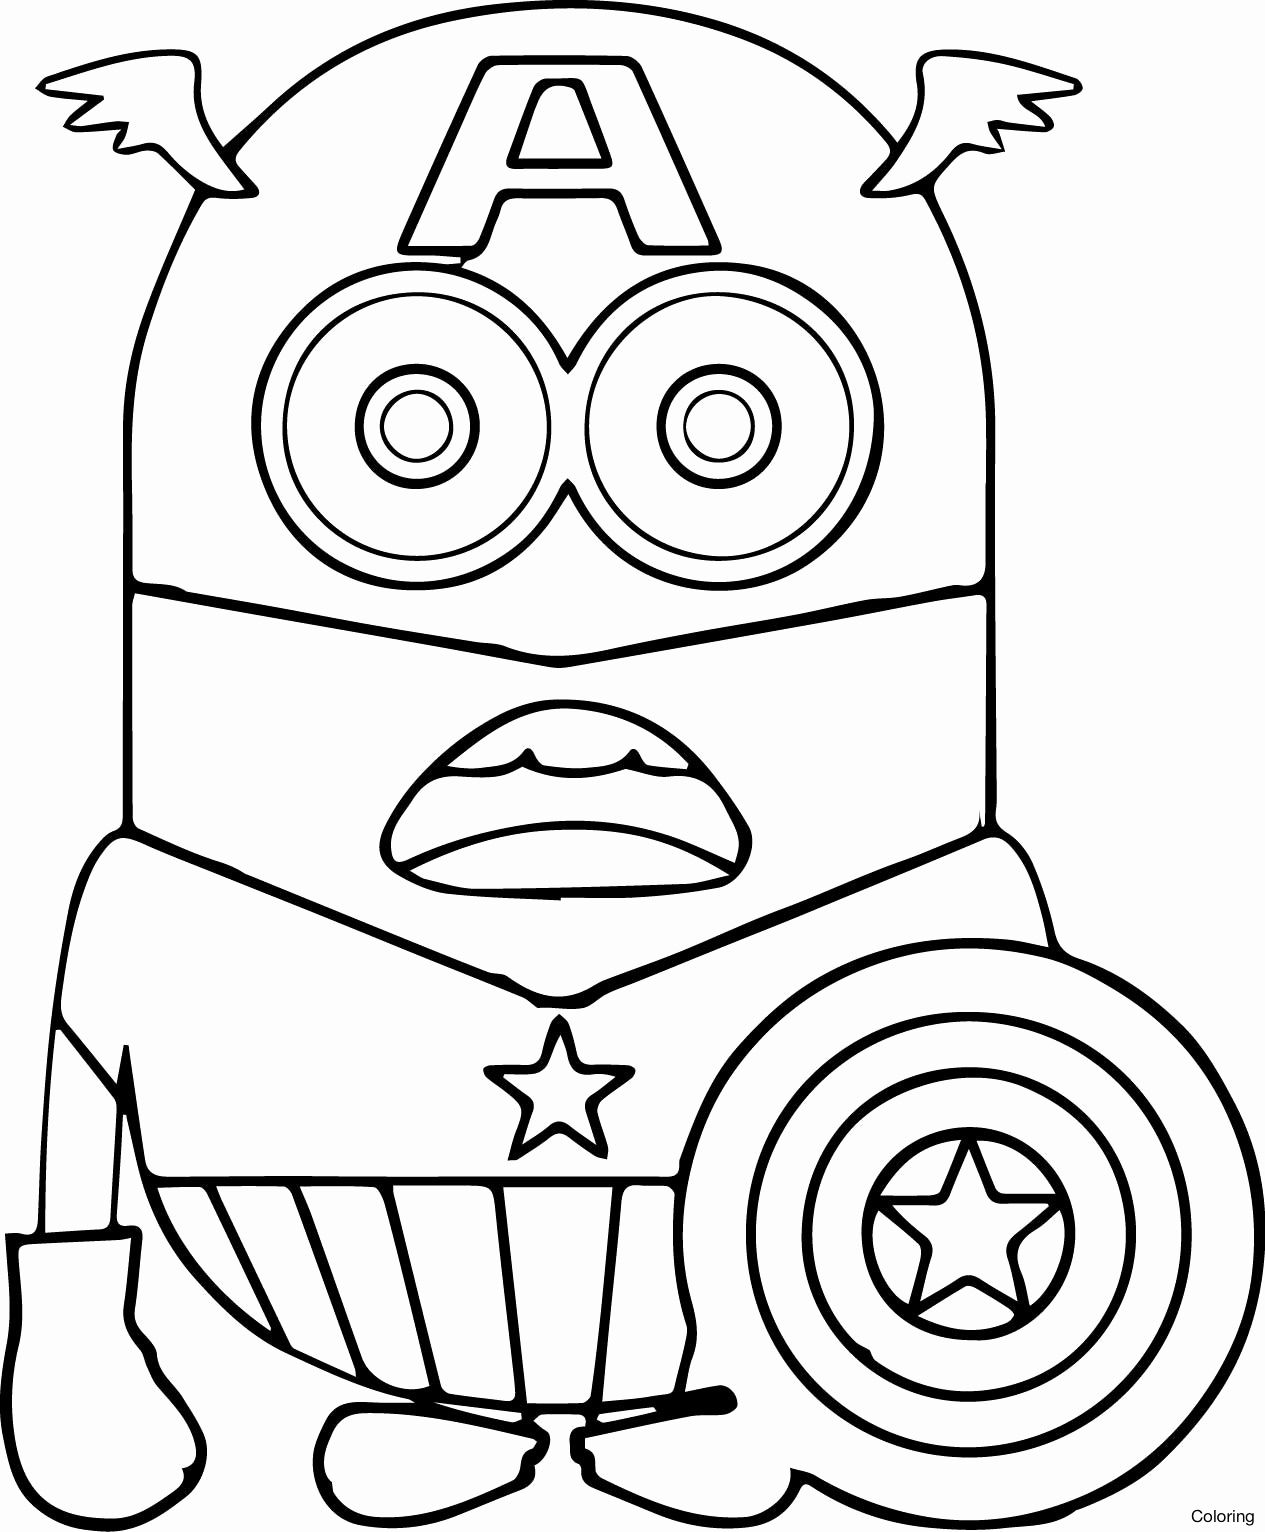 Coloring Pages Minions Coloring Page Cartoon Coloring Book Pdf Santa With Free Printable Entitlementtrap Com Avengers Coloring Pages Minions Coloring Pages Superhero Coloring Pages